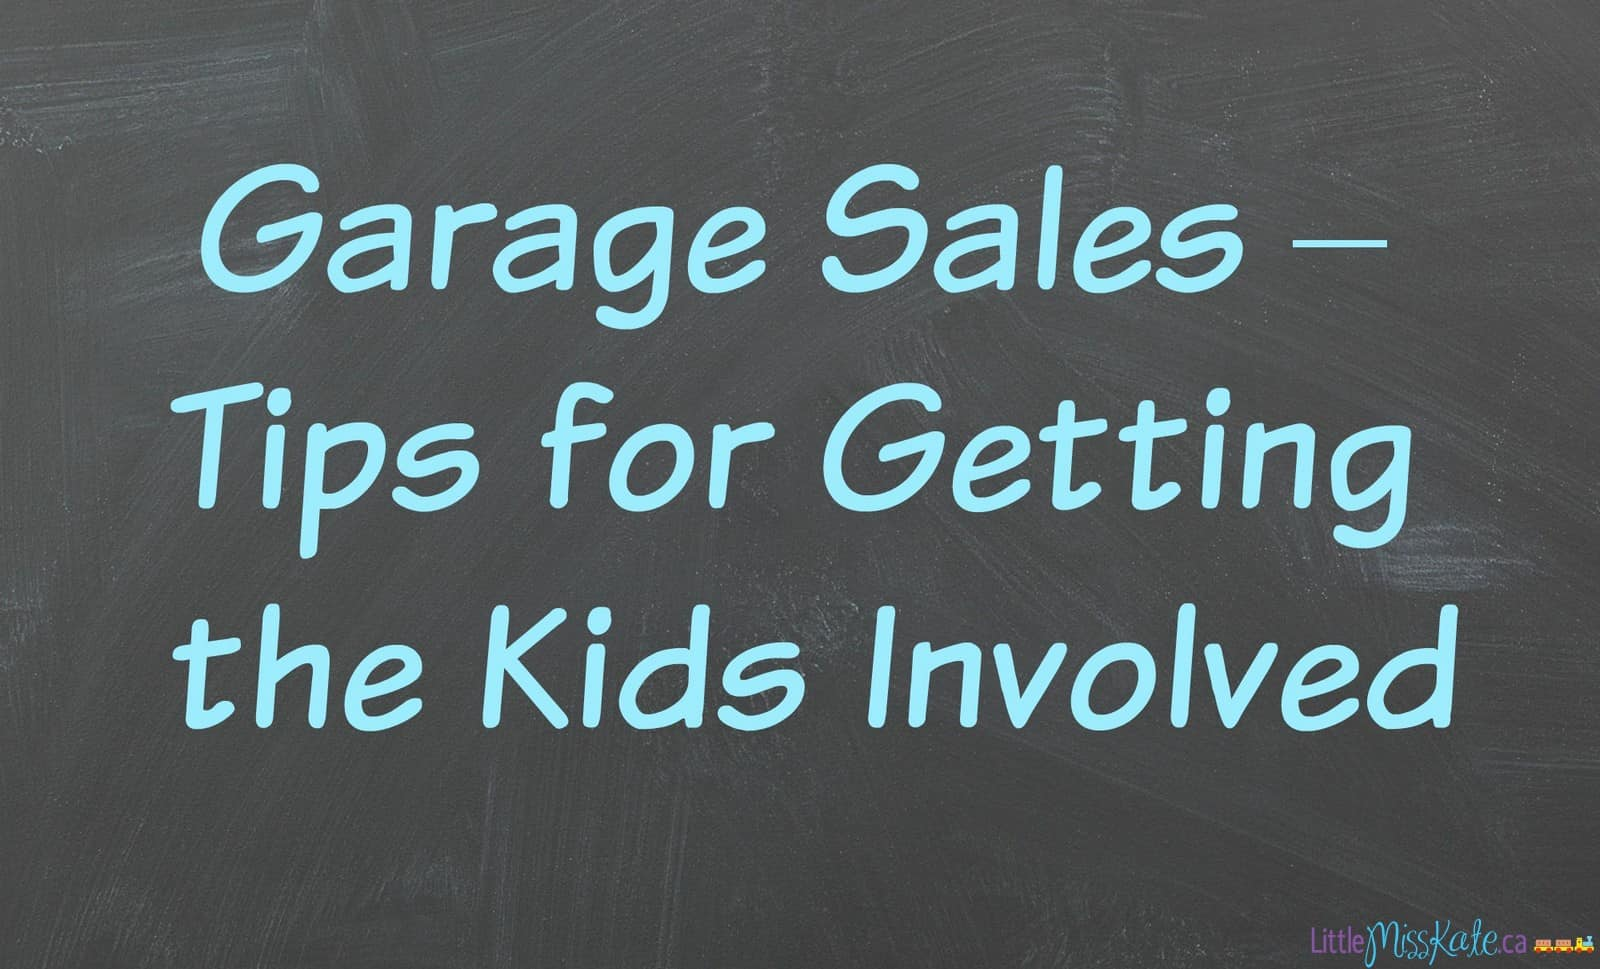 garage sales: tips for getting the kids involved